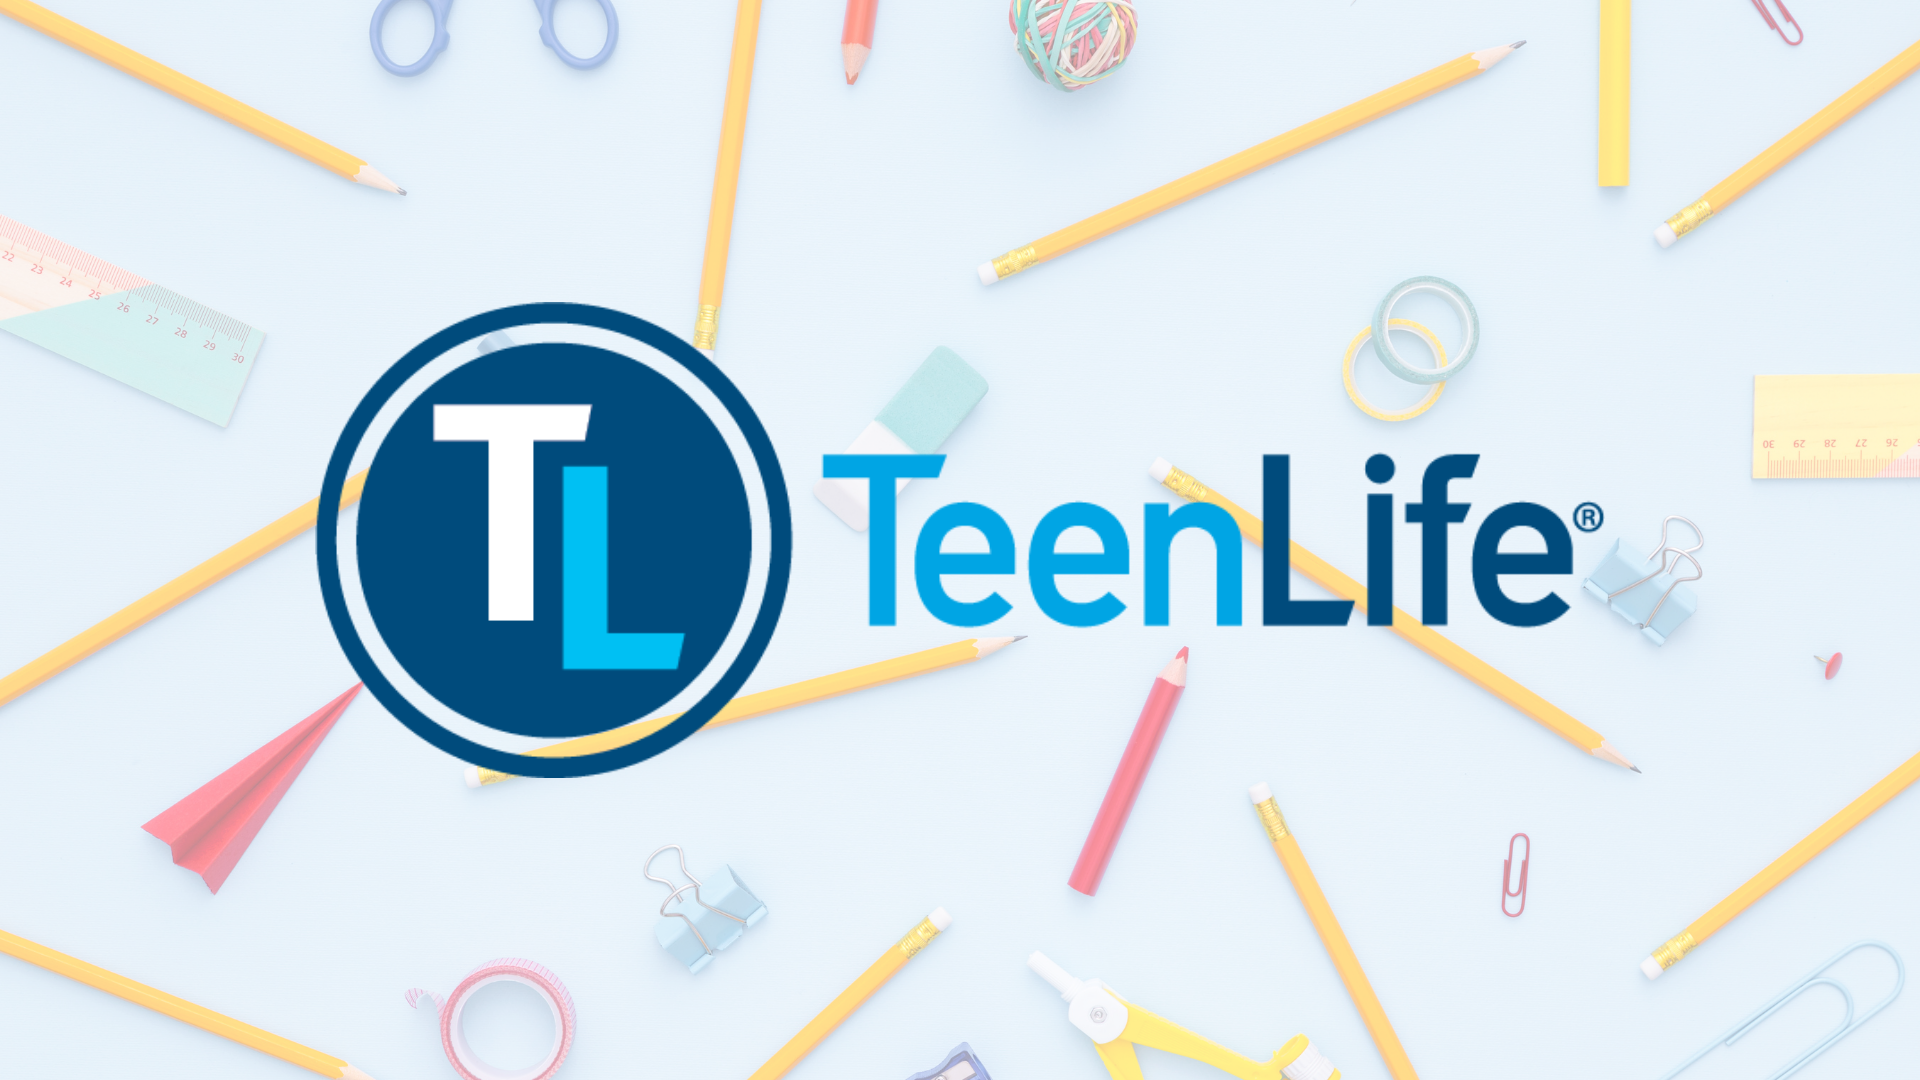 The TeenLife logo is featured in front of lots of different school supplies.